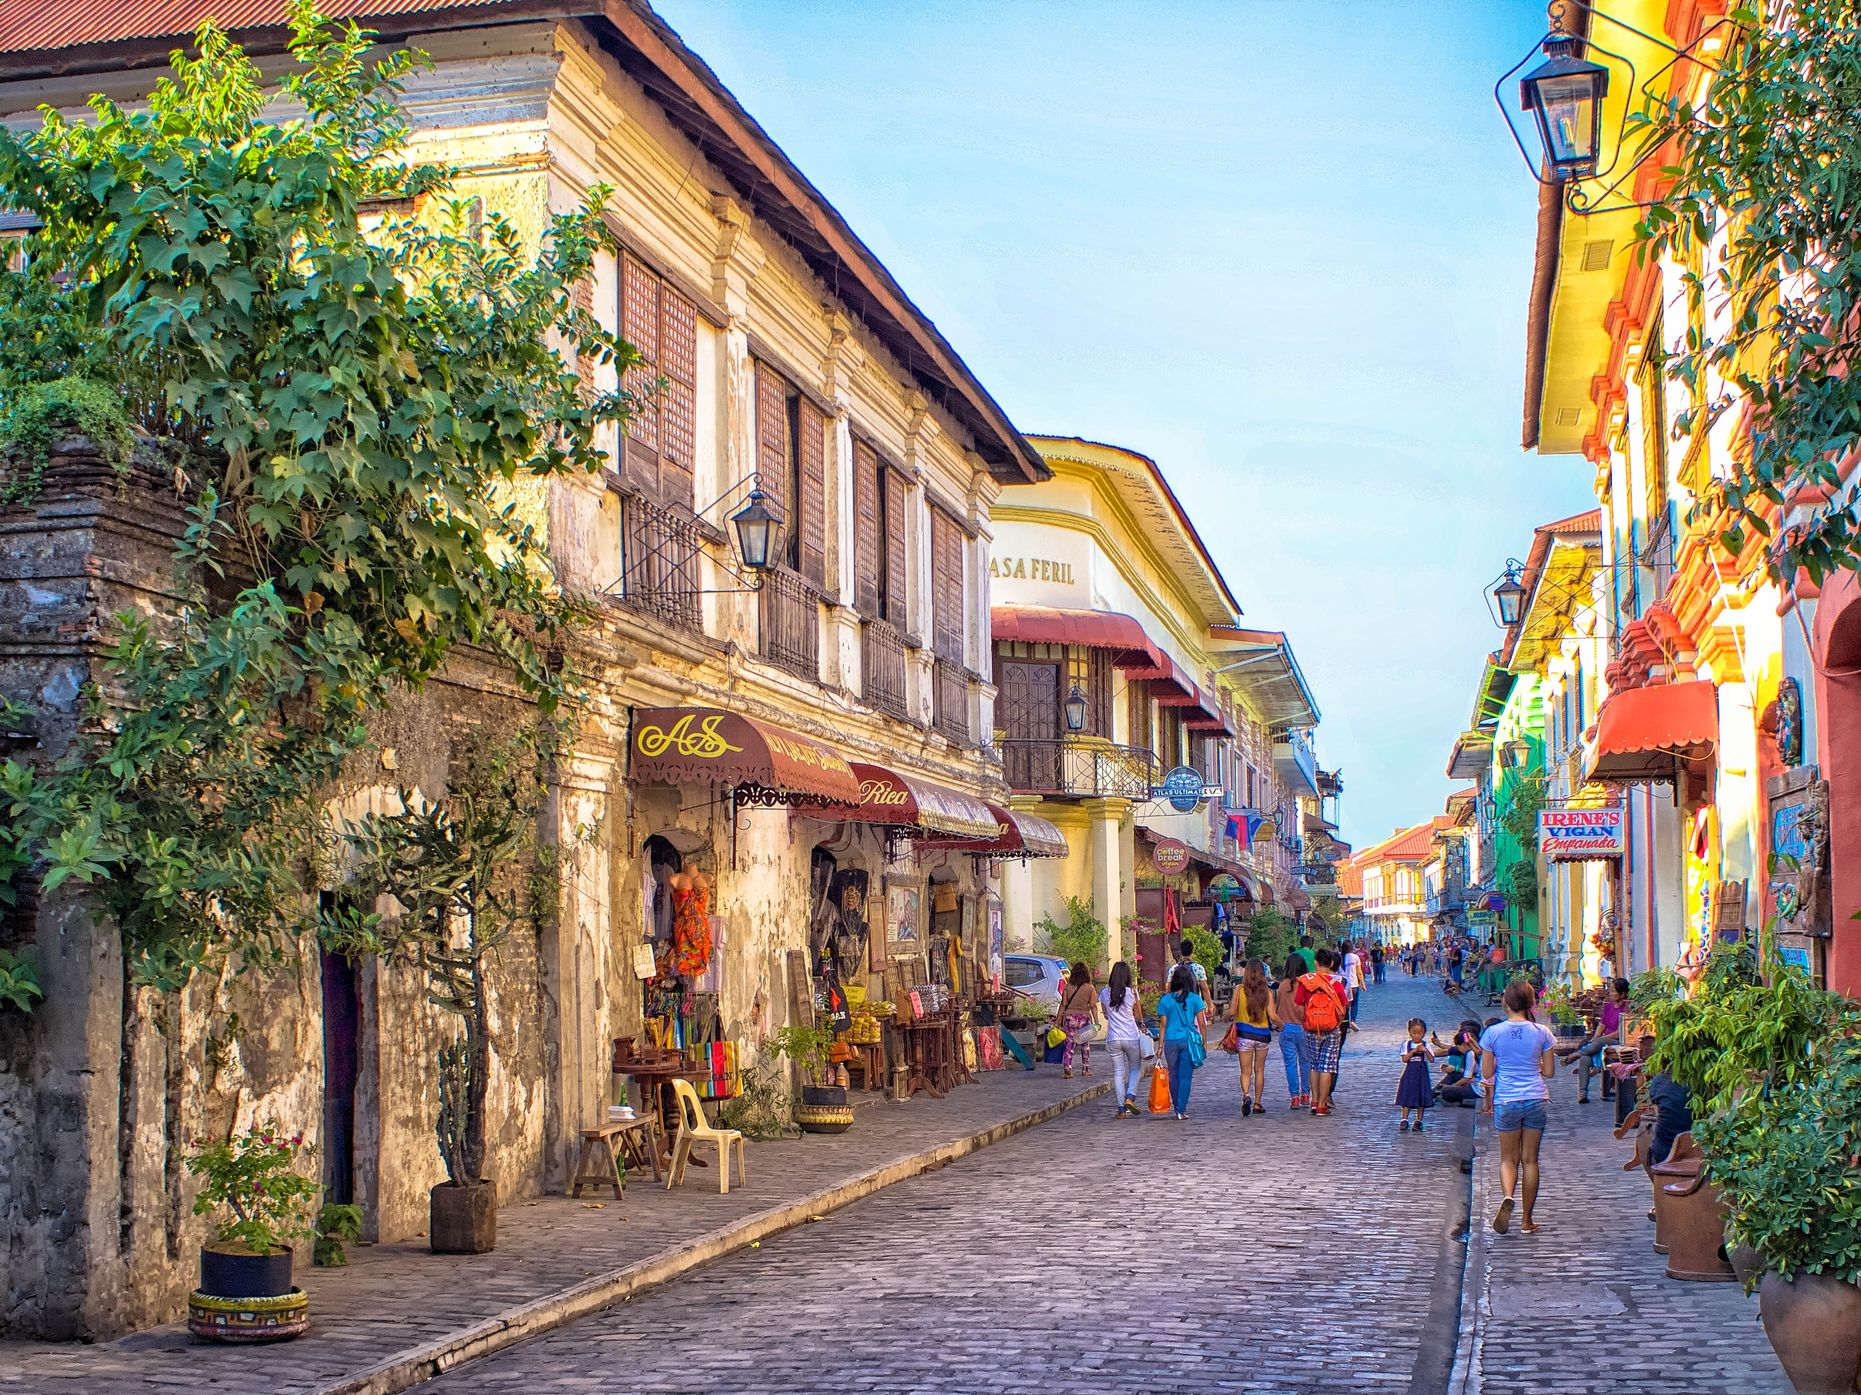 Old Spanish colonial homes and buildings line a cobblestone street where tourists walk along in Vigan, Philippines